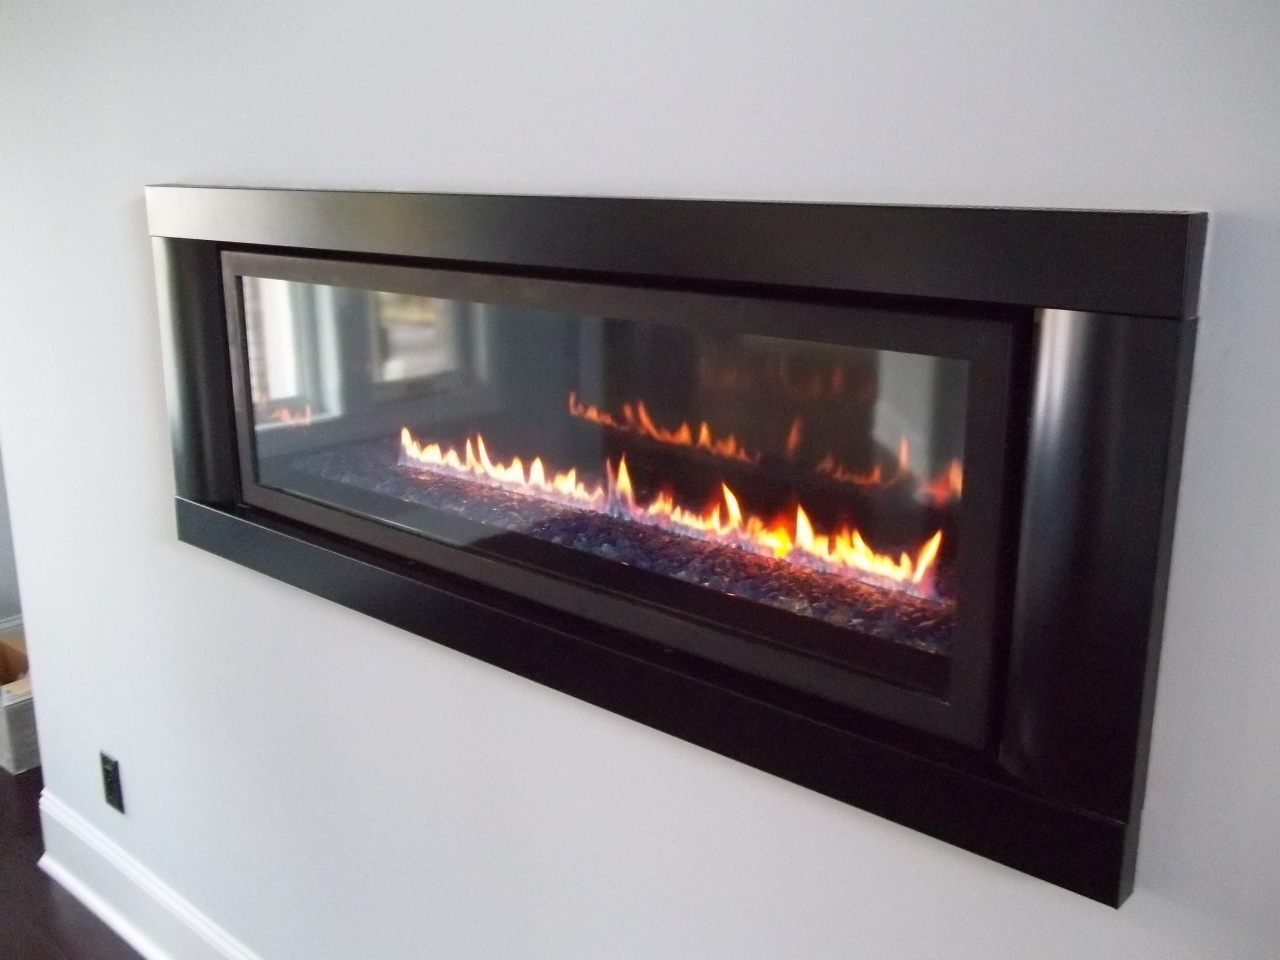 vent free gas fireplace inserts napoleon lhd45 in a very uncluttered wall from vent free gas fireplace inserts